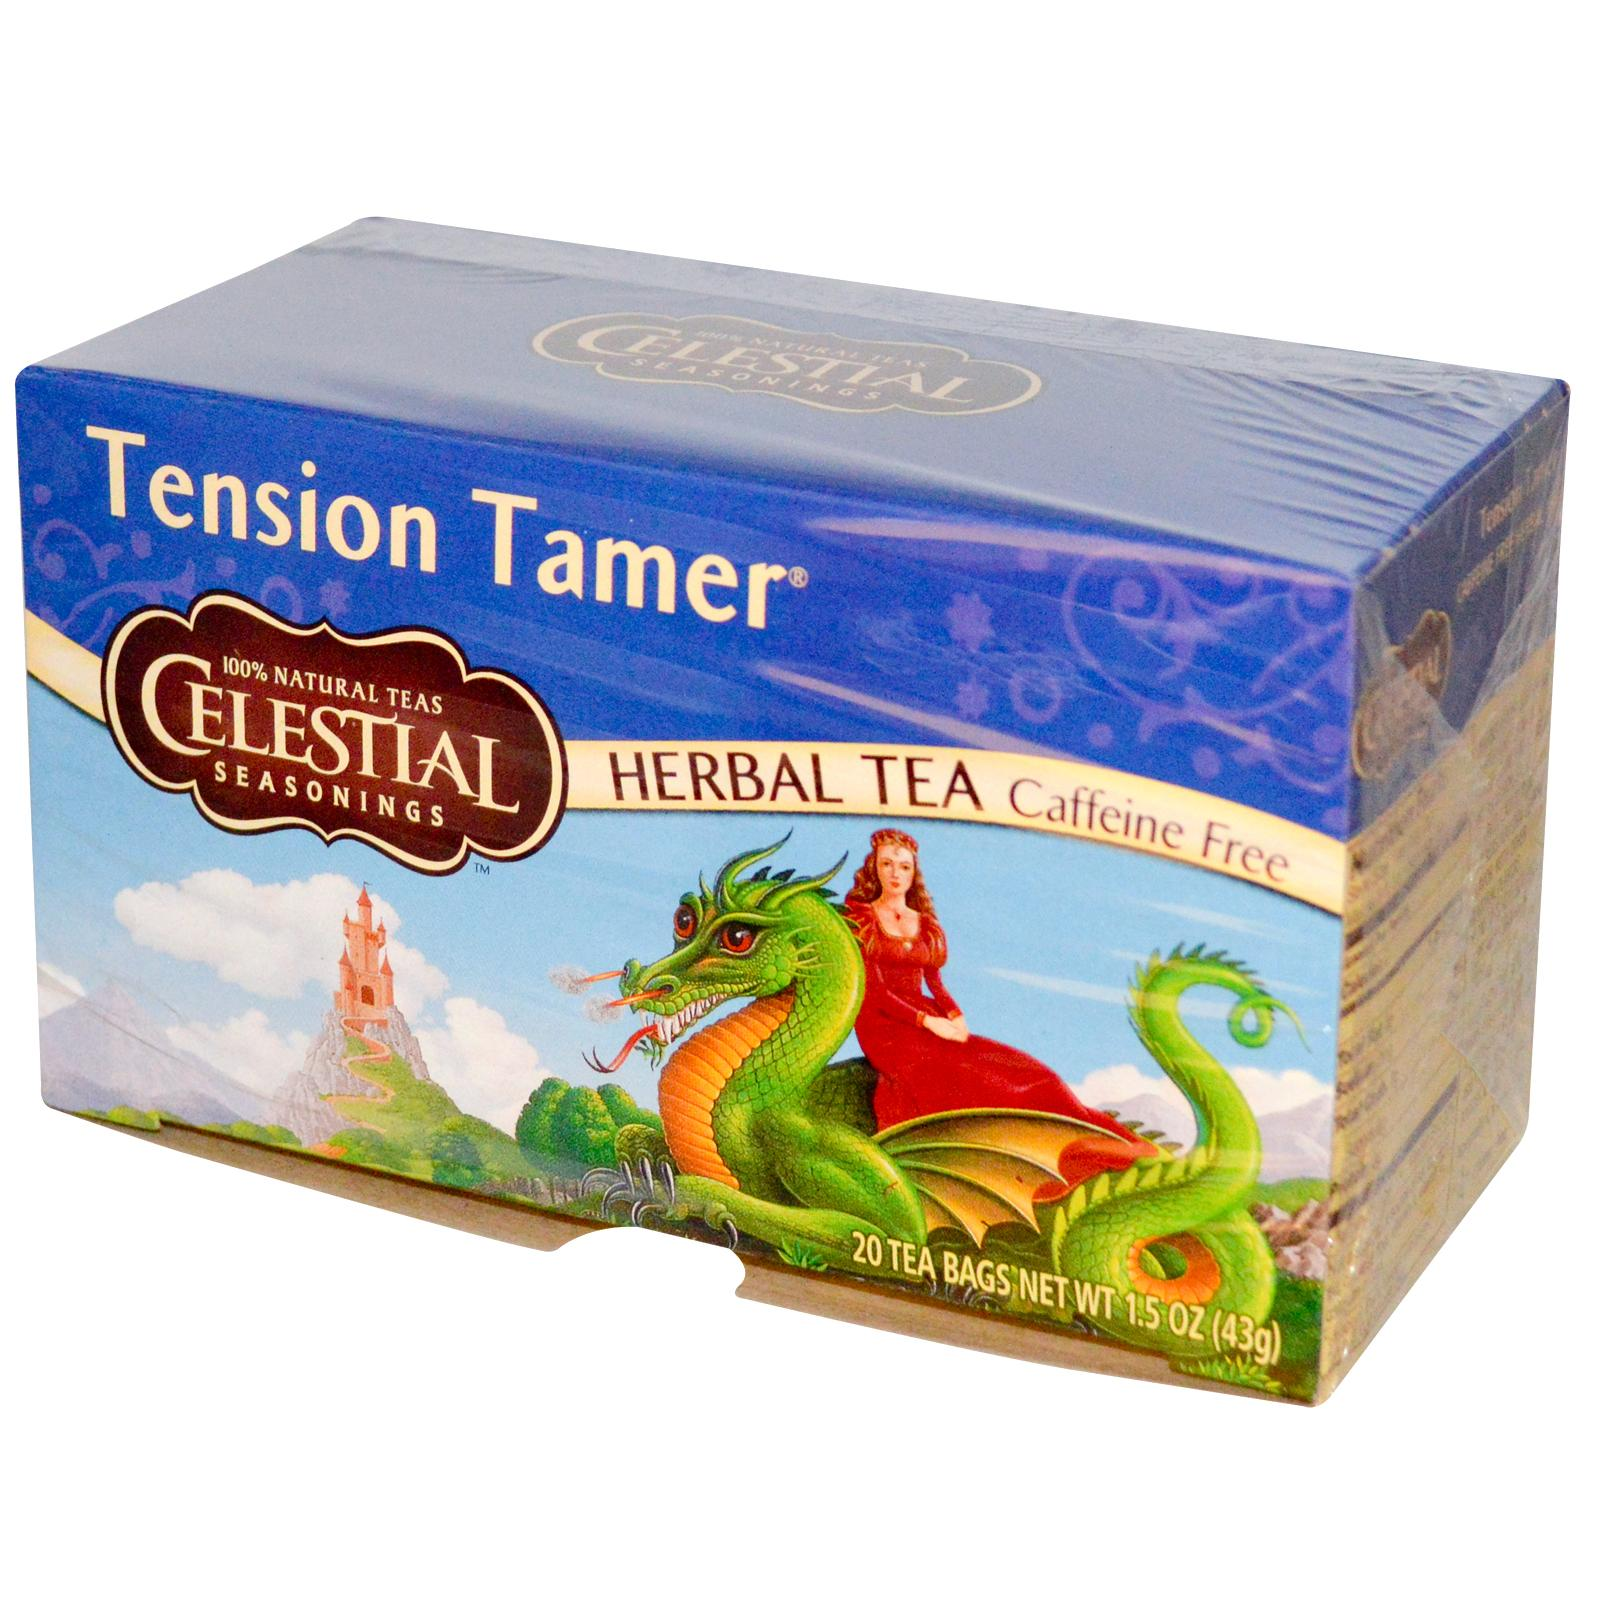 Buy celestial seasonings tea online